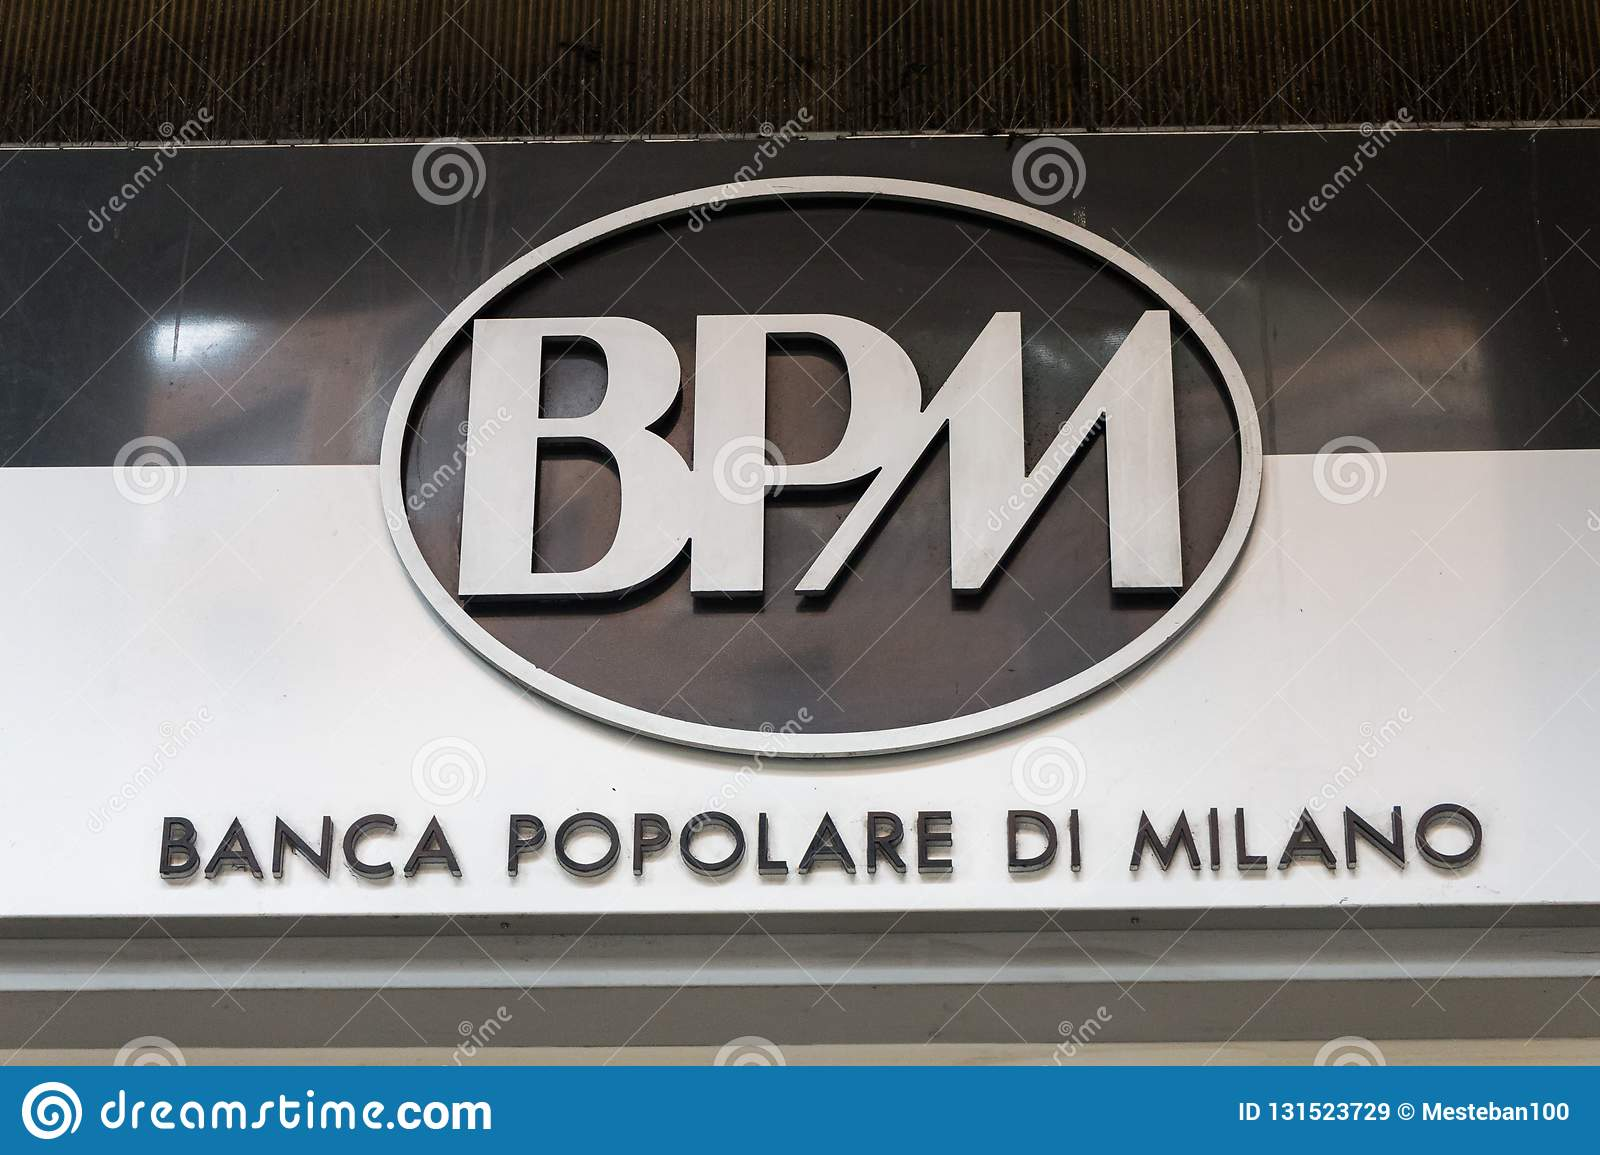 Bpm Logo On Bpms Bank Office Editorial Stock Image Image Of